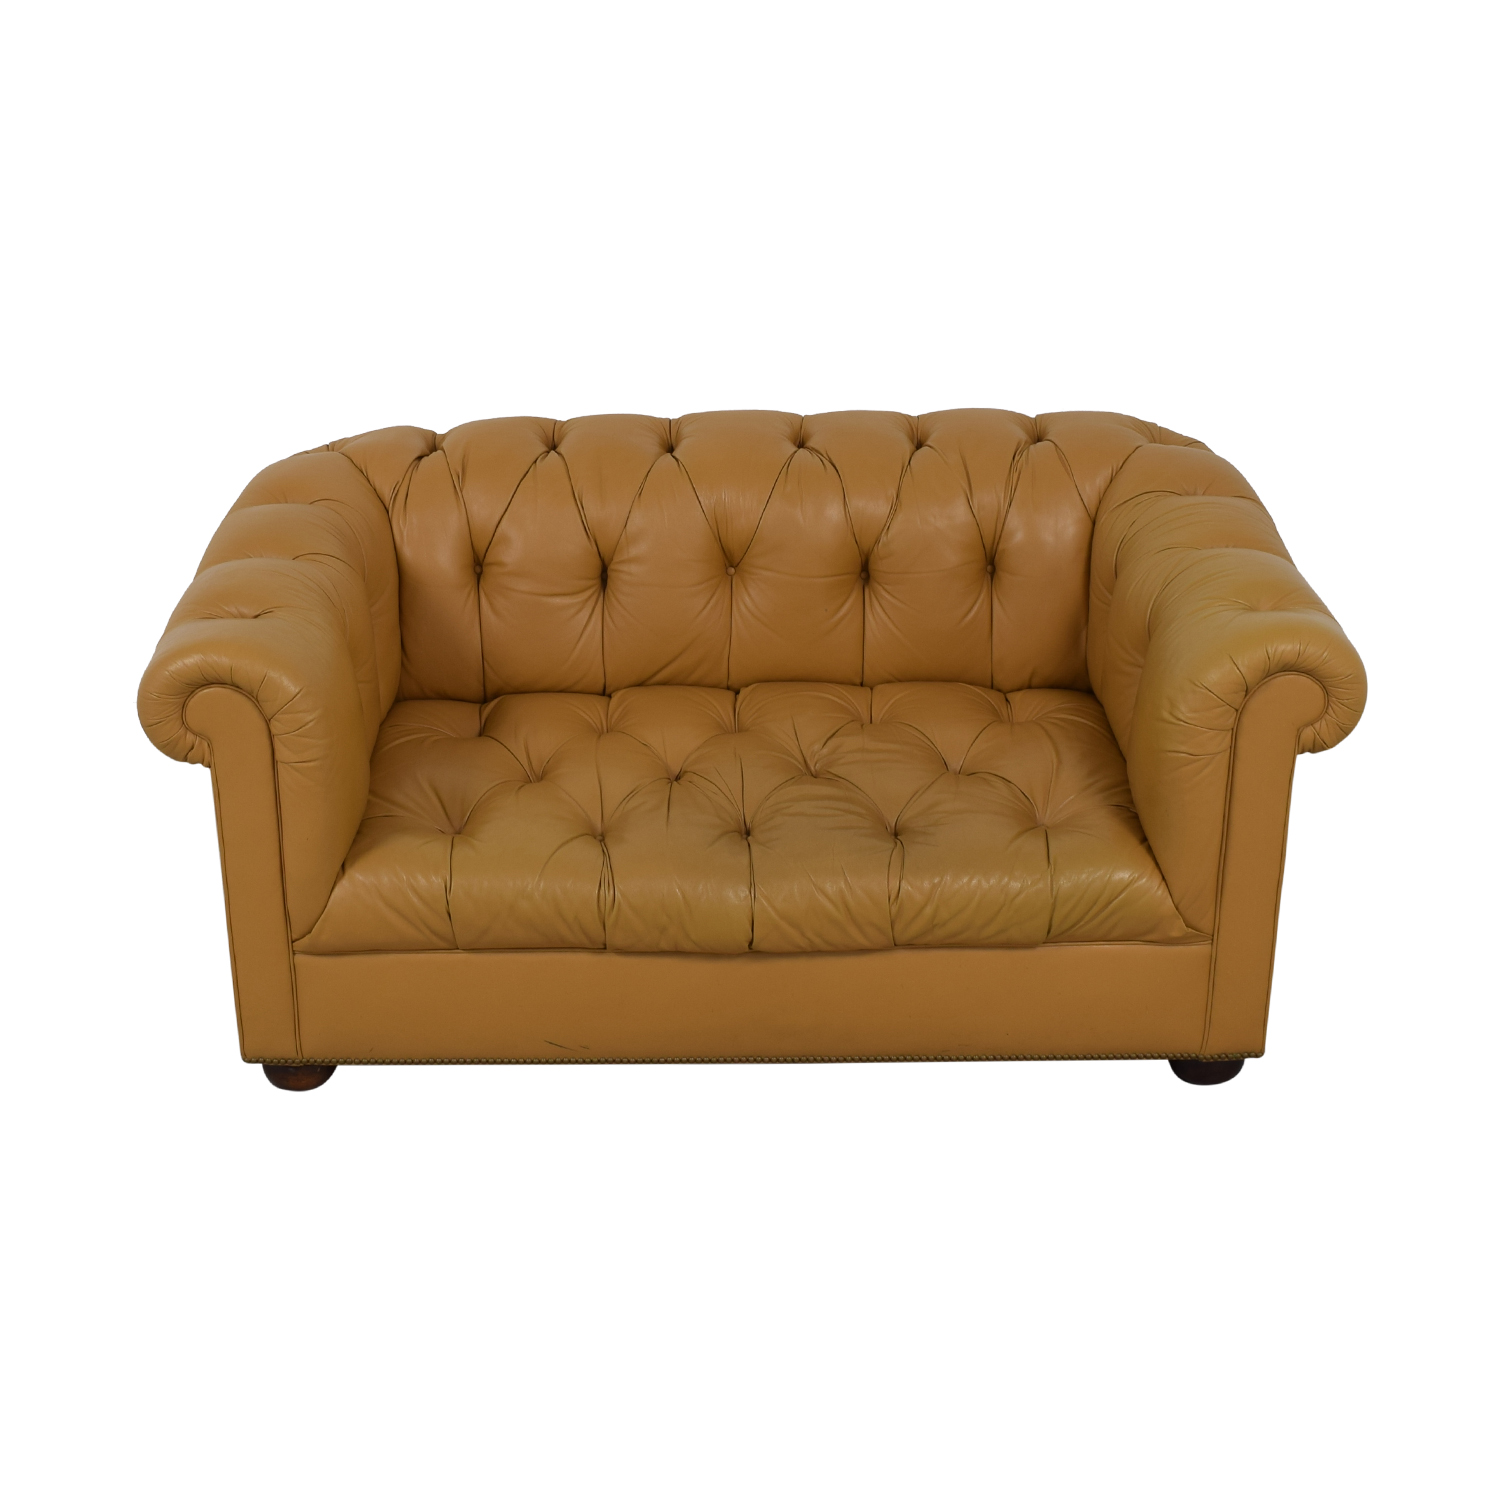 Tan Tufted Single-Cushion Couch